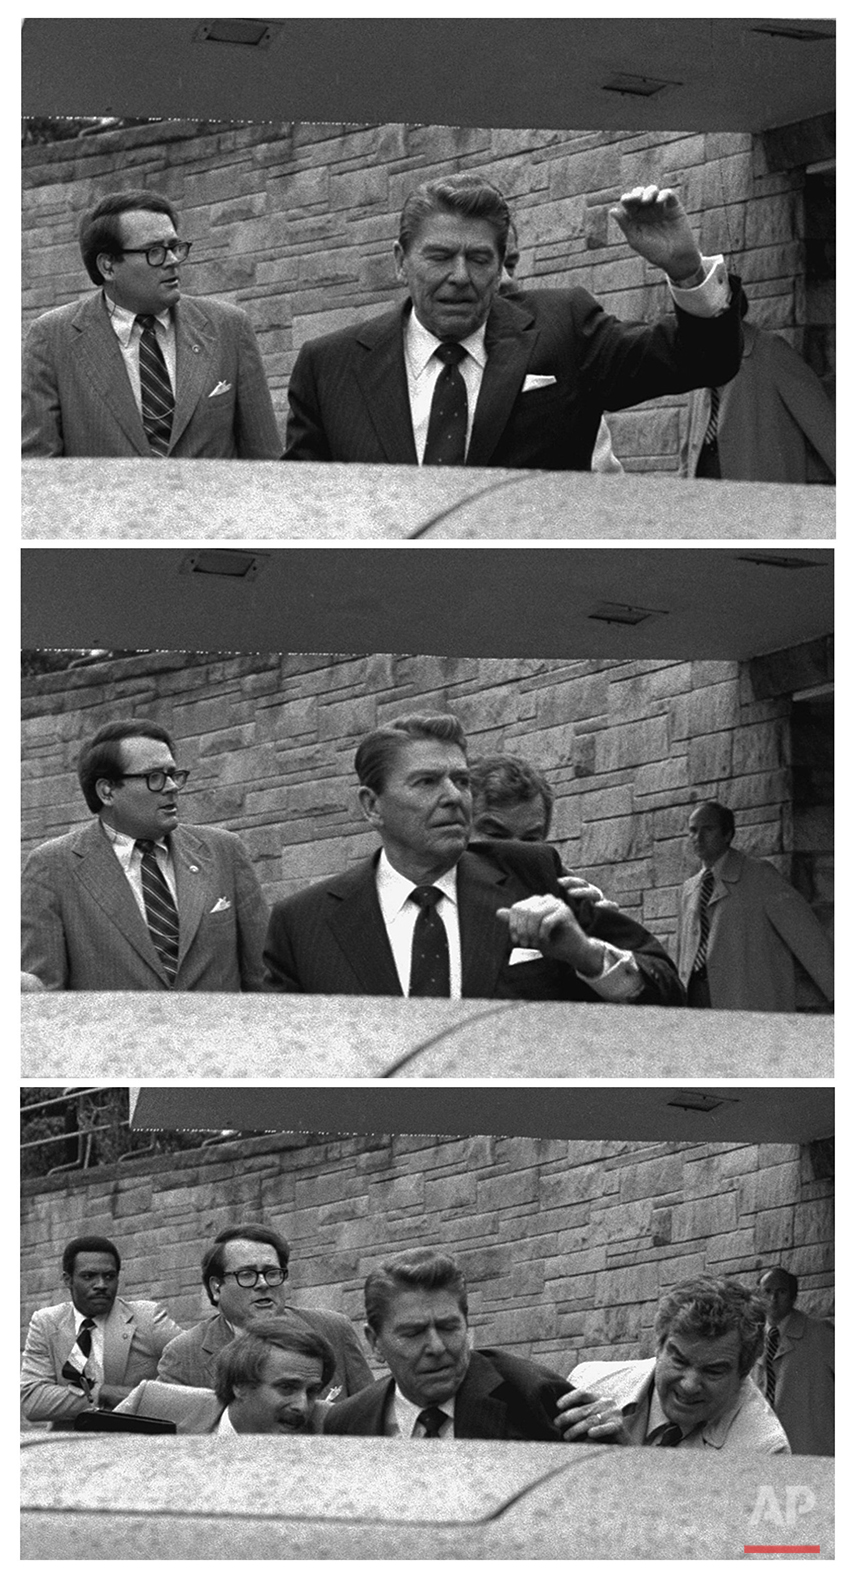 In this March 30, 1981 black-and-white three picture combo file photo, President Reagan waves, then looks up before being shoved into Presidential limousine by Secret Service agents after being shot outside a hotel in Washington. John Hinckley Jr. shot four people outside a Washington hotel on March 30, 1981, but two of his victims understandably got most of the attention: President Ronald Reagan and his press secretary, James Brady. Former Secret Service agent Timothy McCarthy and former District of Columbia police officer Thomas Delahanty, both of whom took bullets to protect the president. (AP Photo/Ron Edmonds)